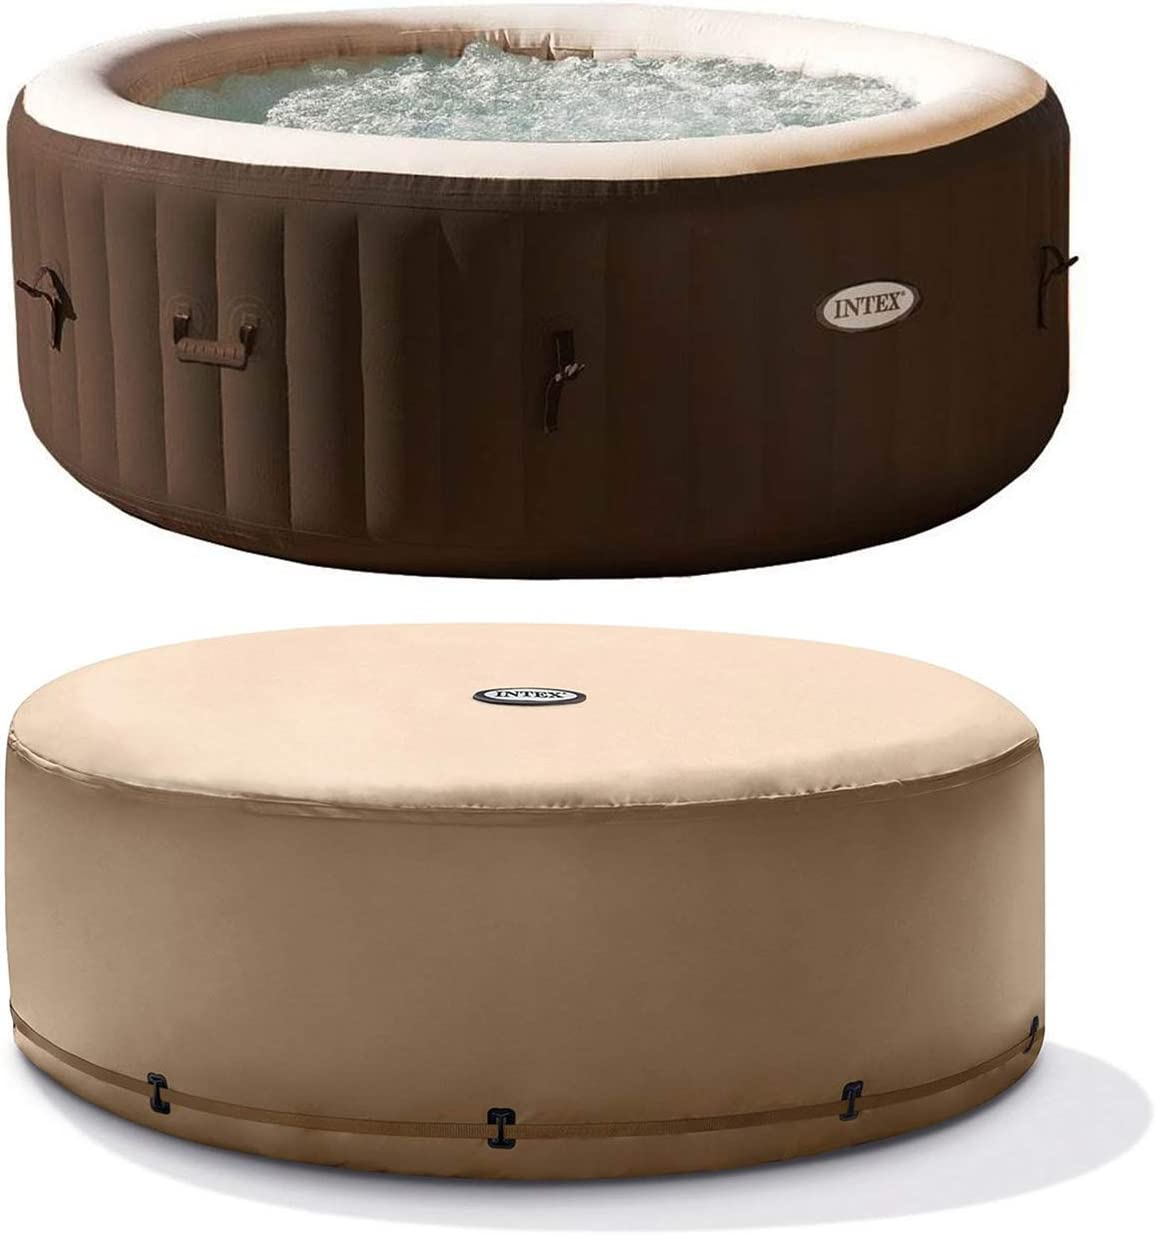 Intex PureSpa Bubble Massage 4 Person Inflatable Hot Tub Spa with Soothing Jets and Replacement Cover